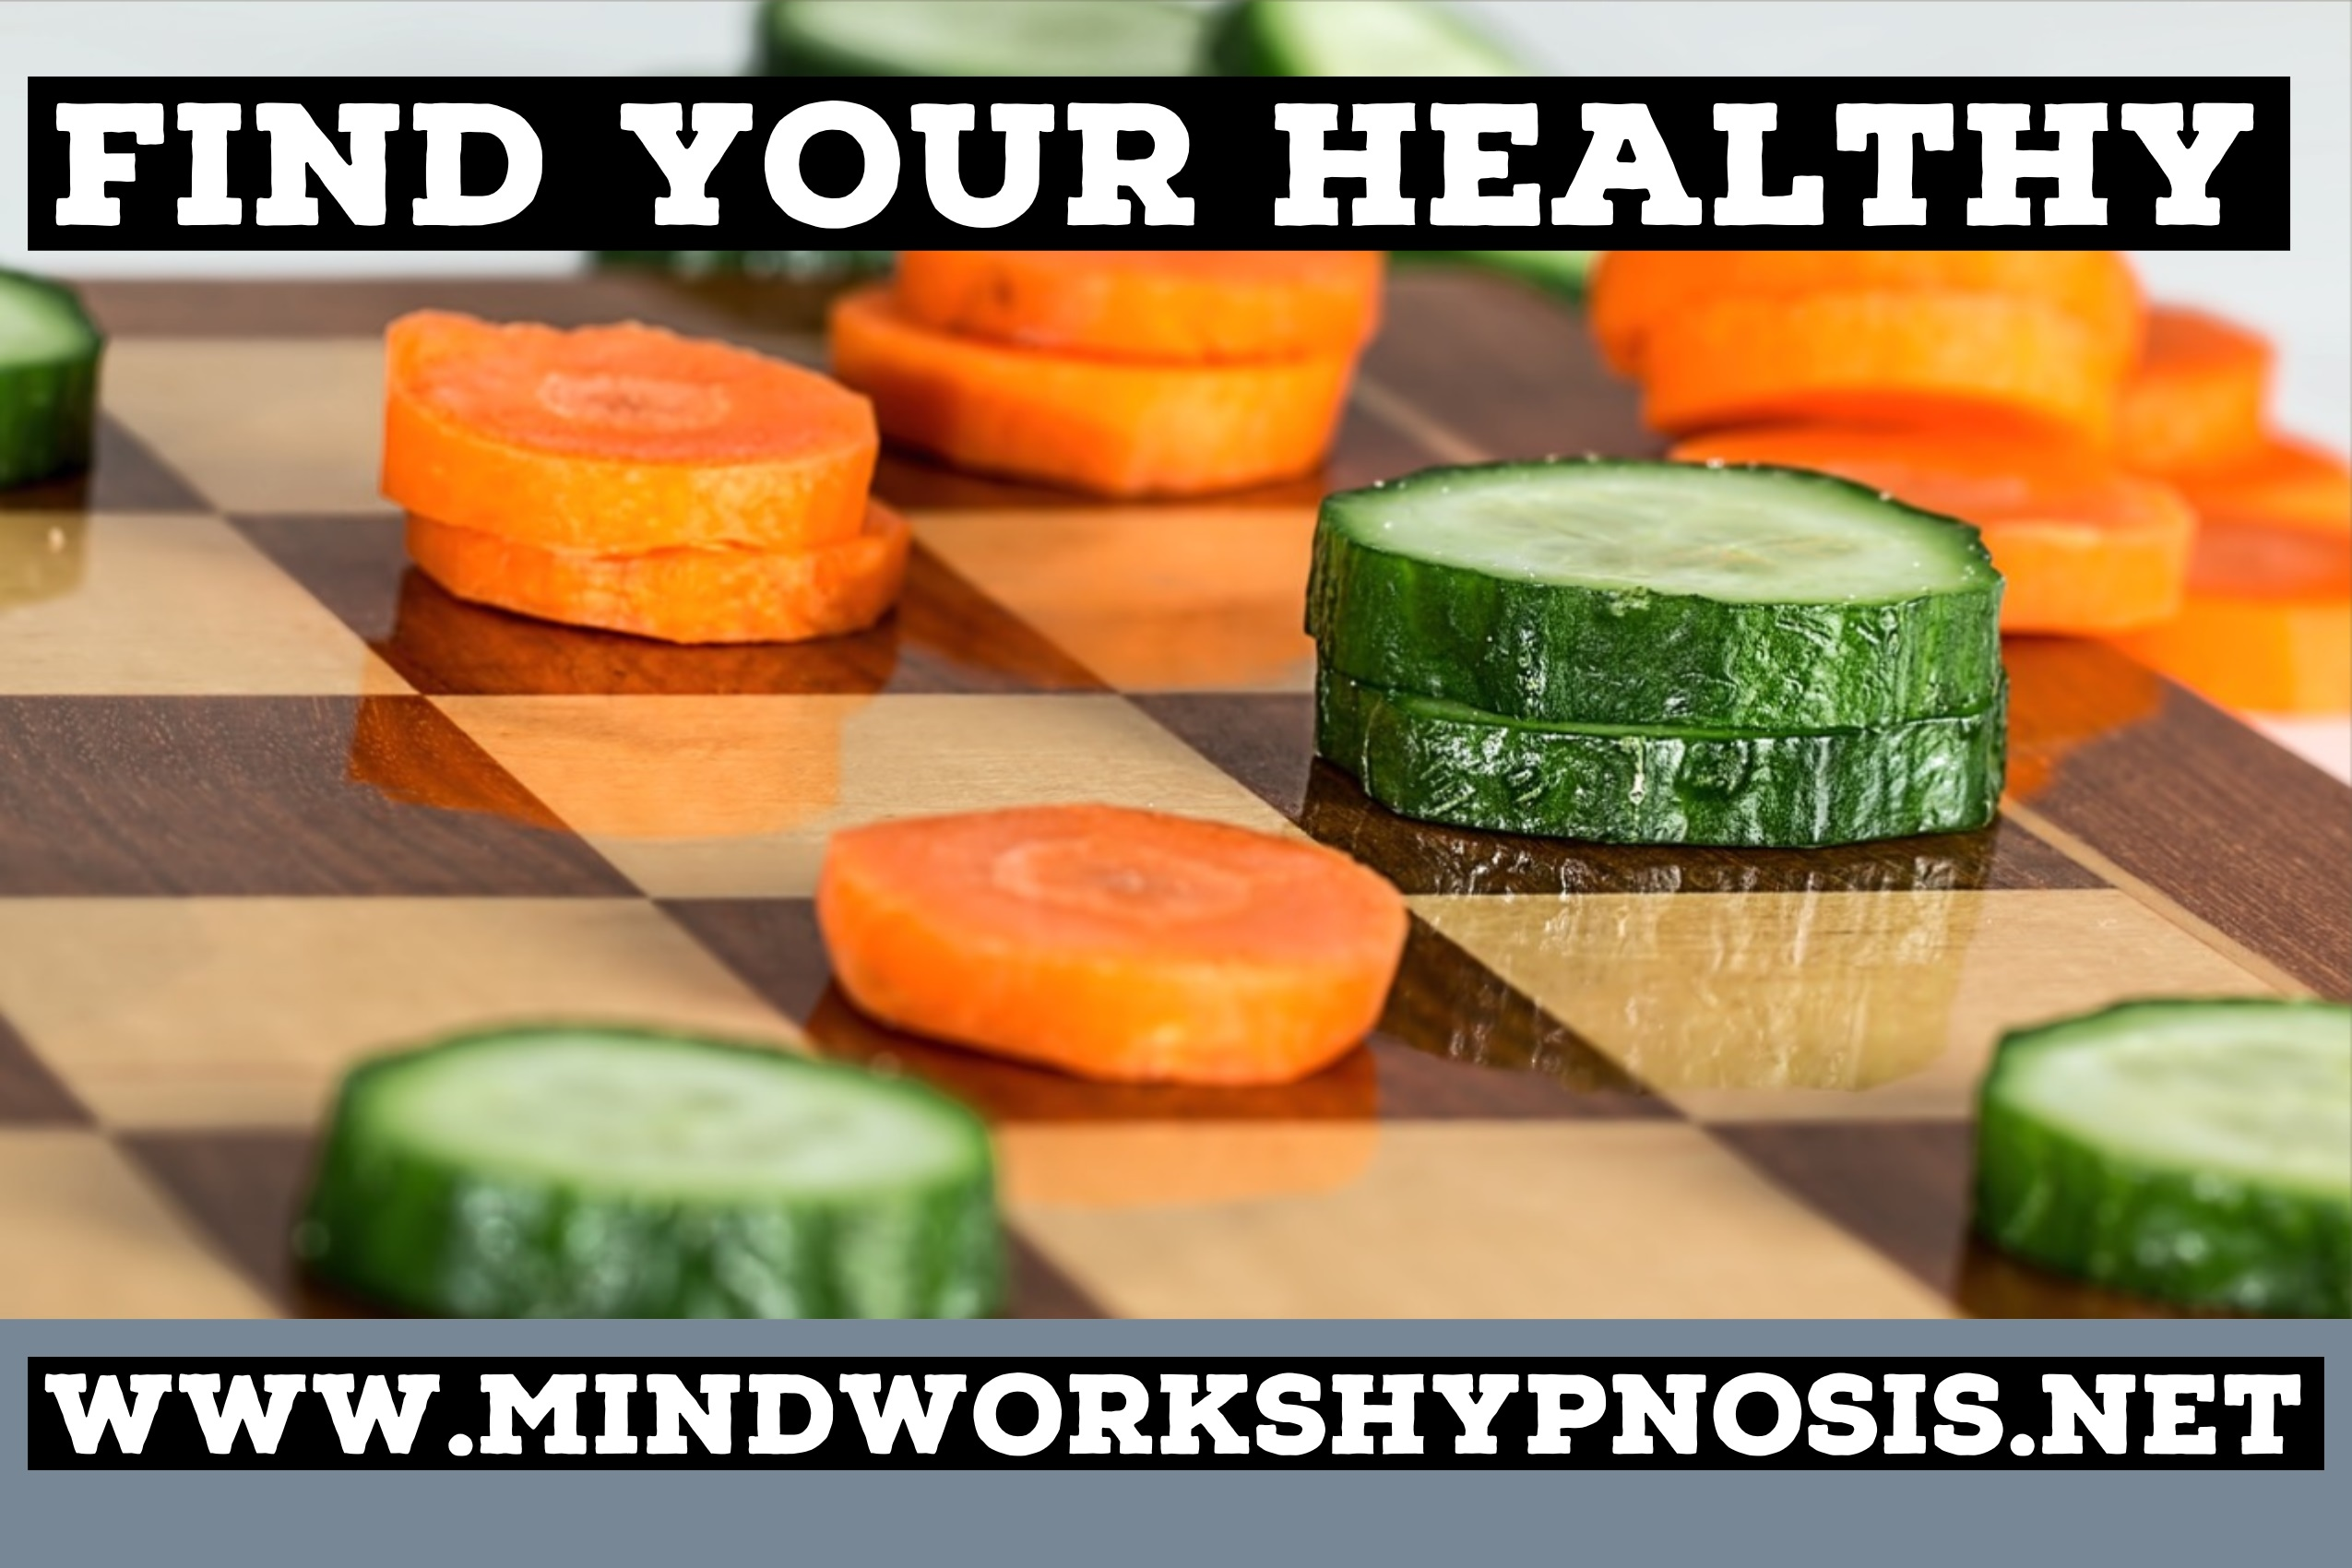 Find Your Healthy Choices Automated with Mindworks Hypnosis & NLP